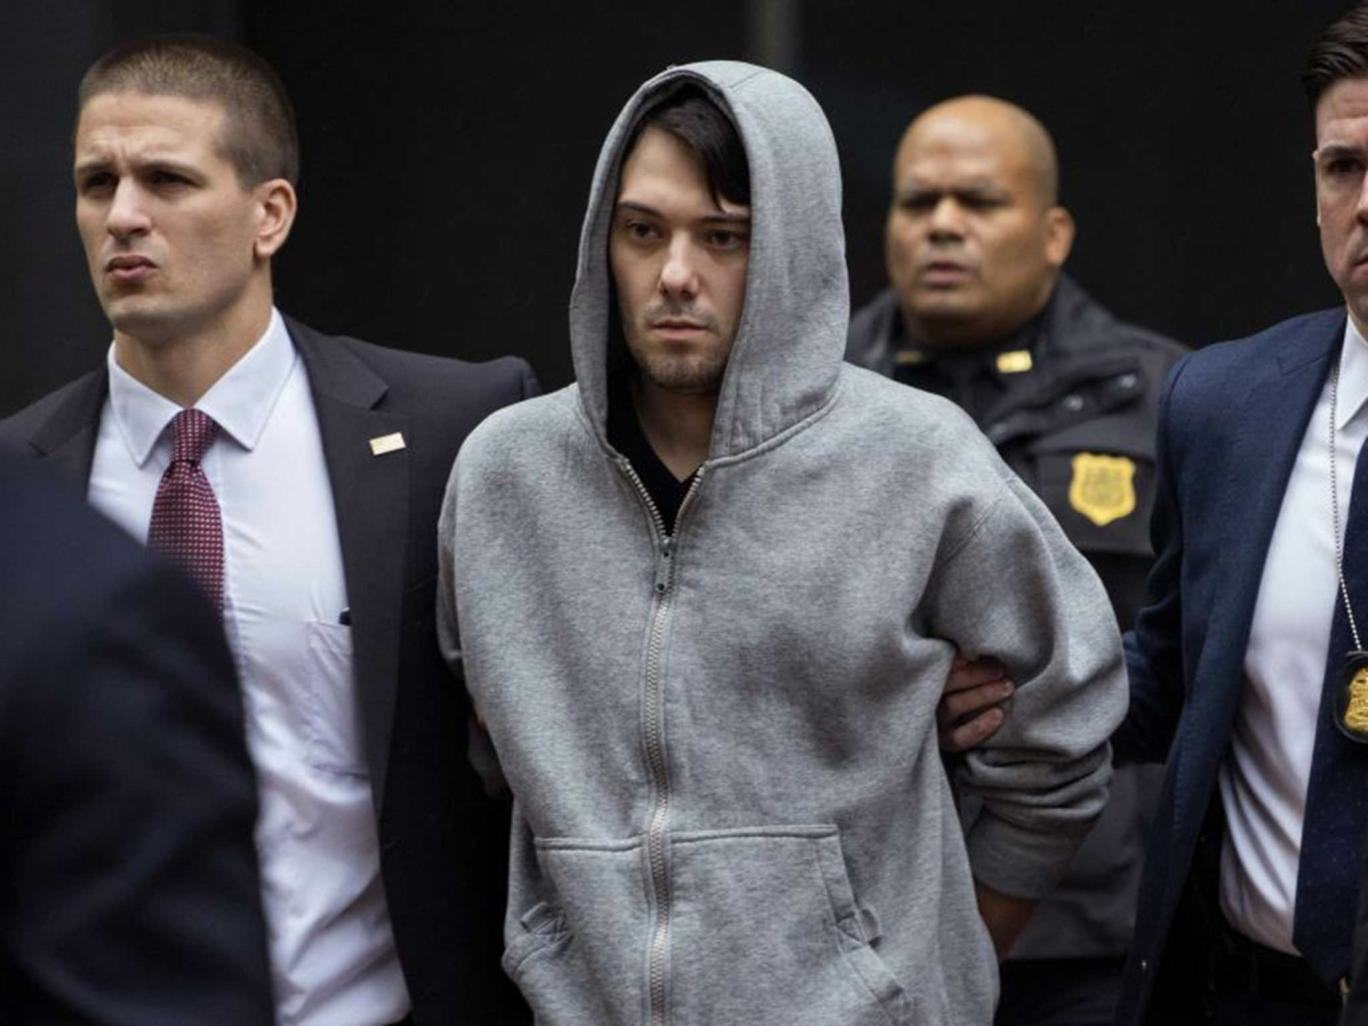 shkreli 3 Most Hated Man On The Internet Claims His Shitty Behaviour Is All An Act